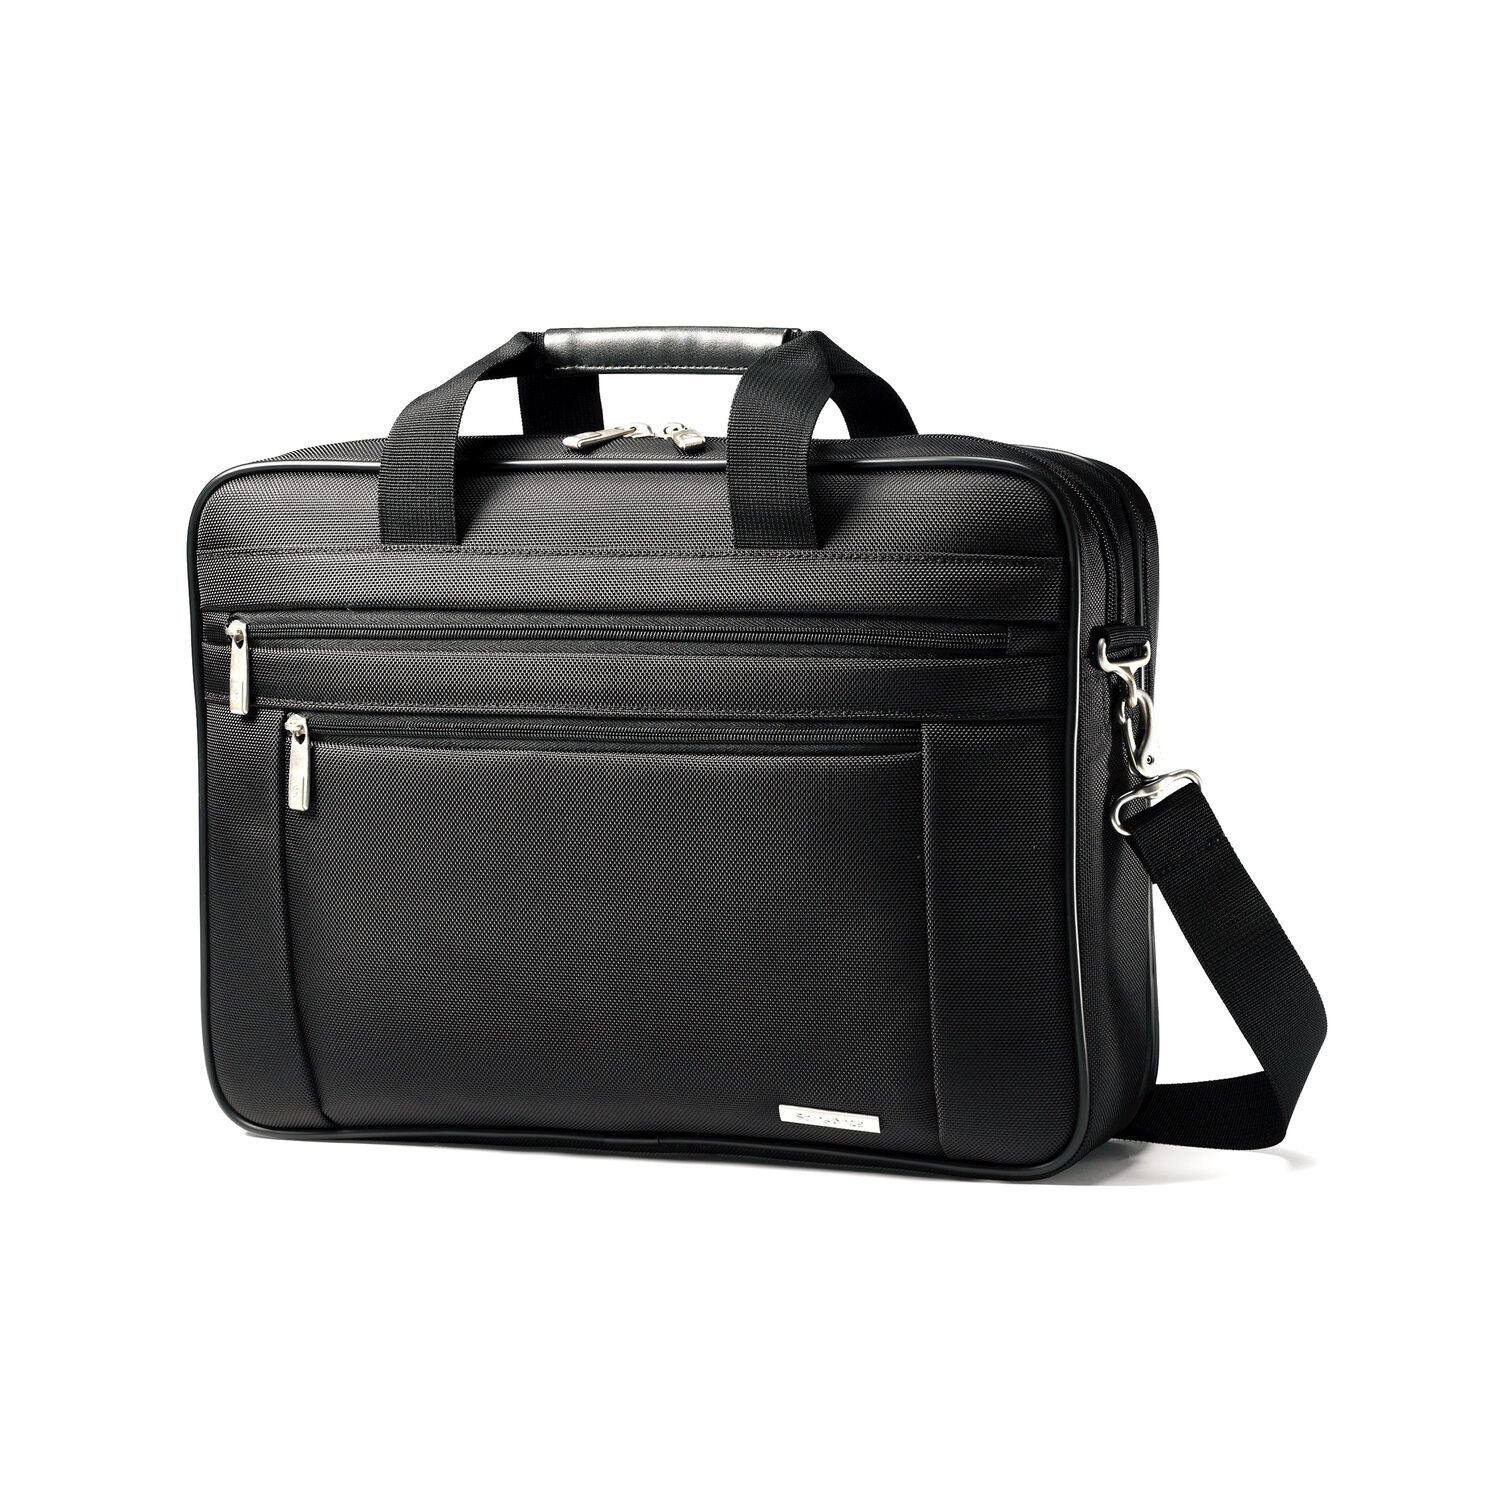 f2baa71f96cd Samsonite Classic Business Perfect Fit Two Gusset Laptop Bag - 15.6